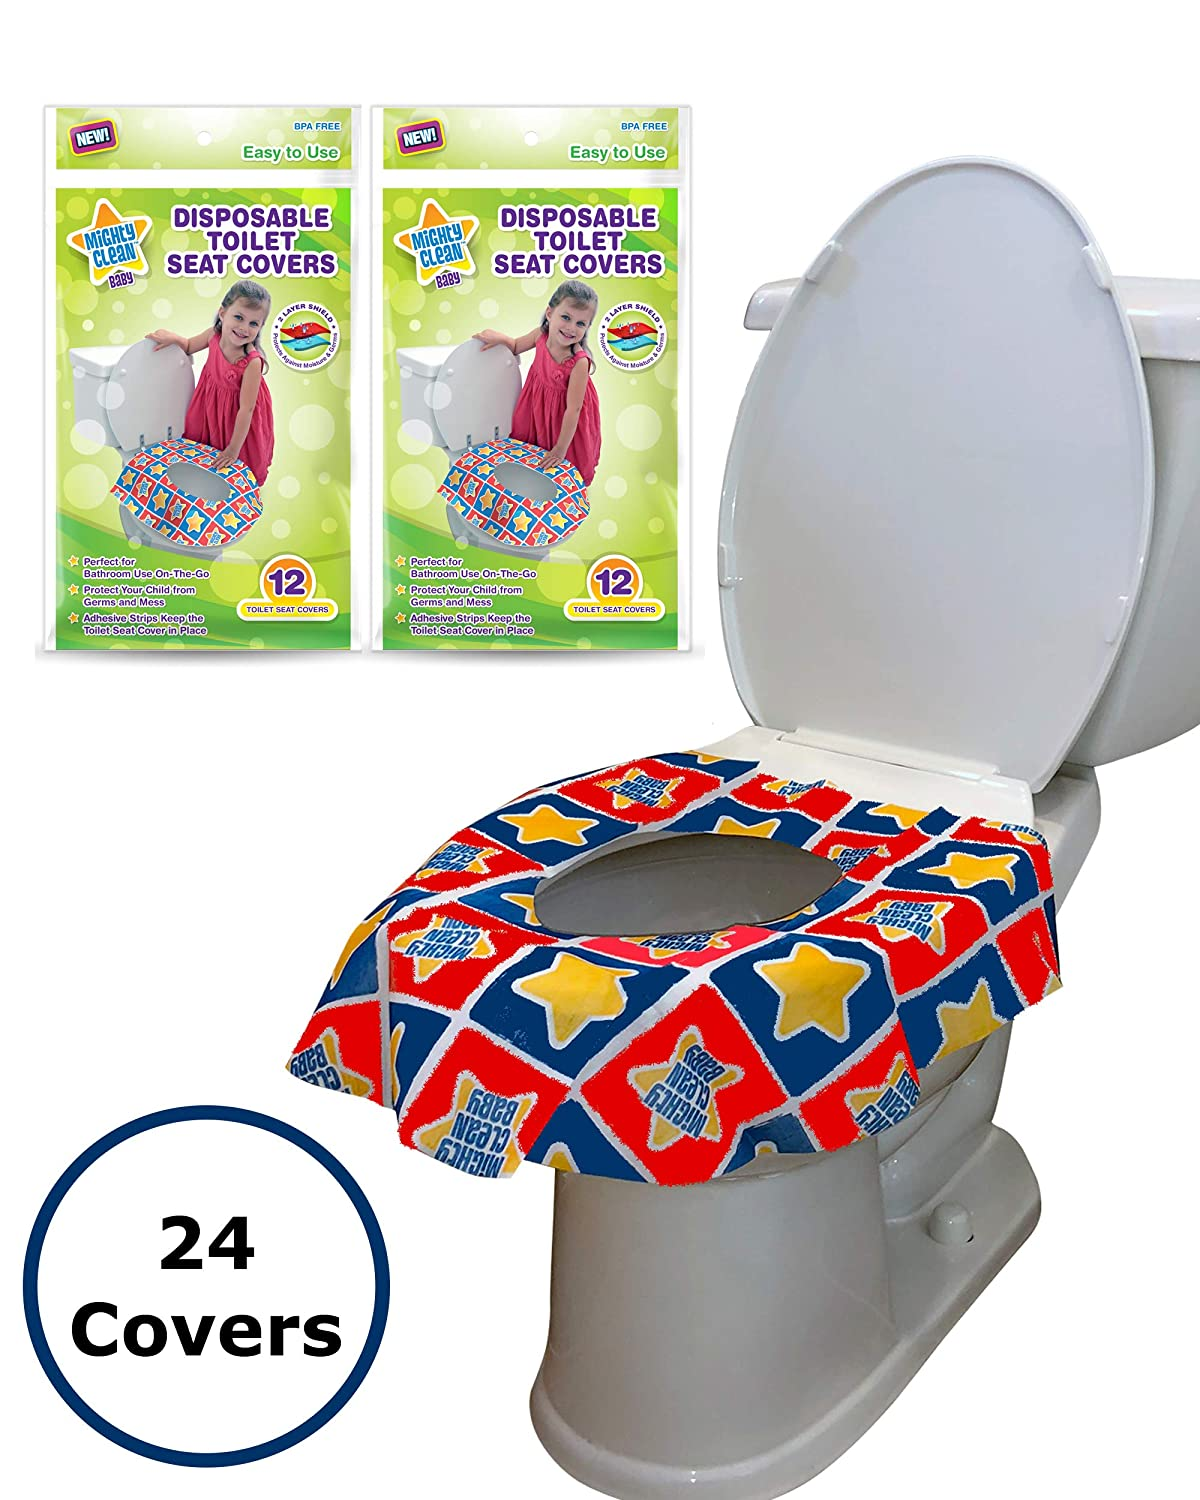 24 Large Disposable Toilet Seat Covers - Portable Potty Seat Covers for Toddlers, Kids, and Adults by Mighty Clean Baby - 2 Packs of 12 Covers